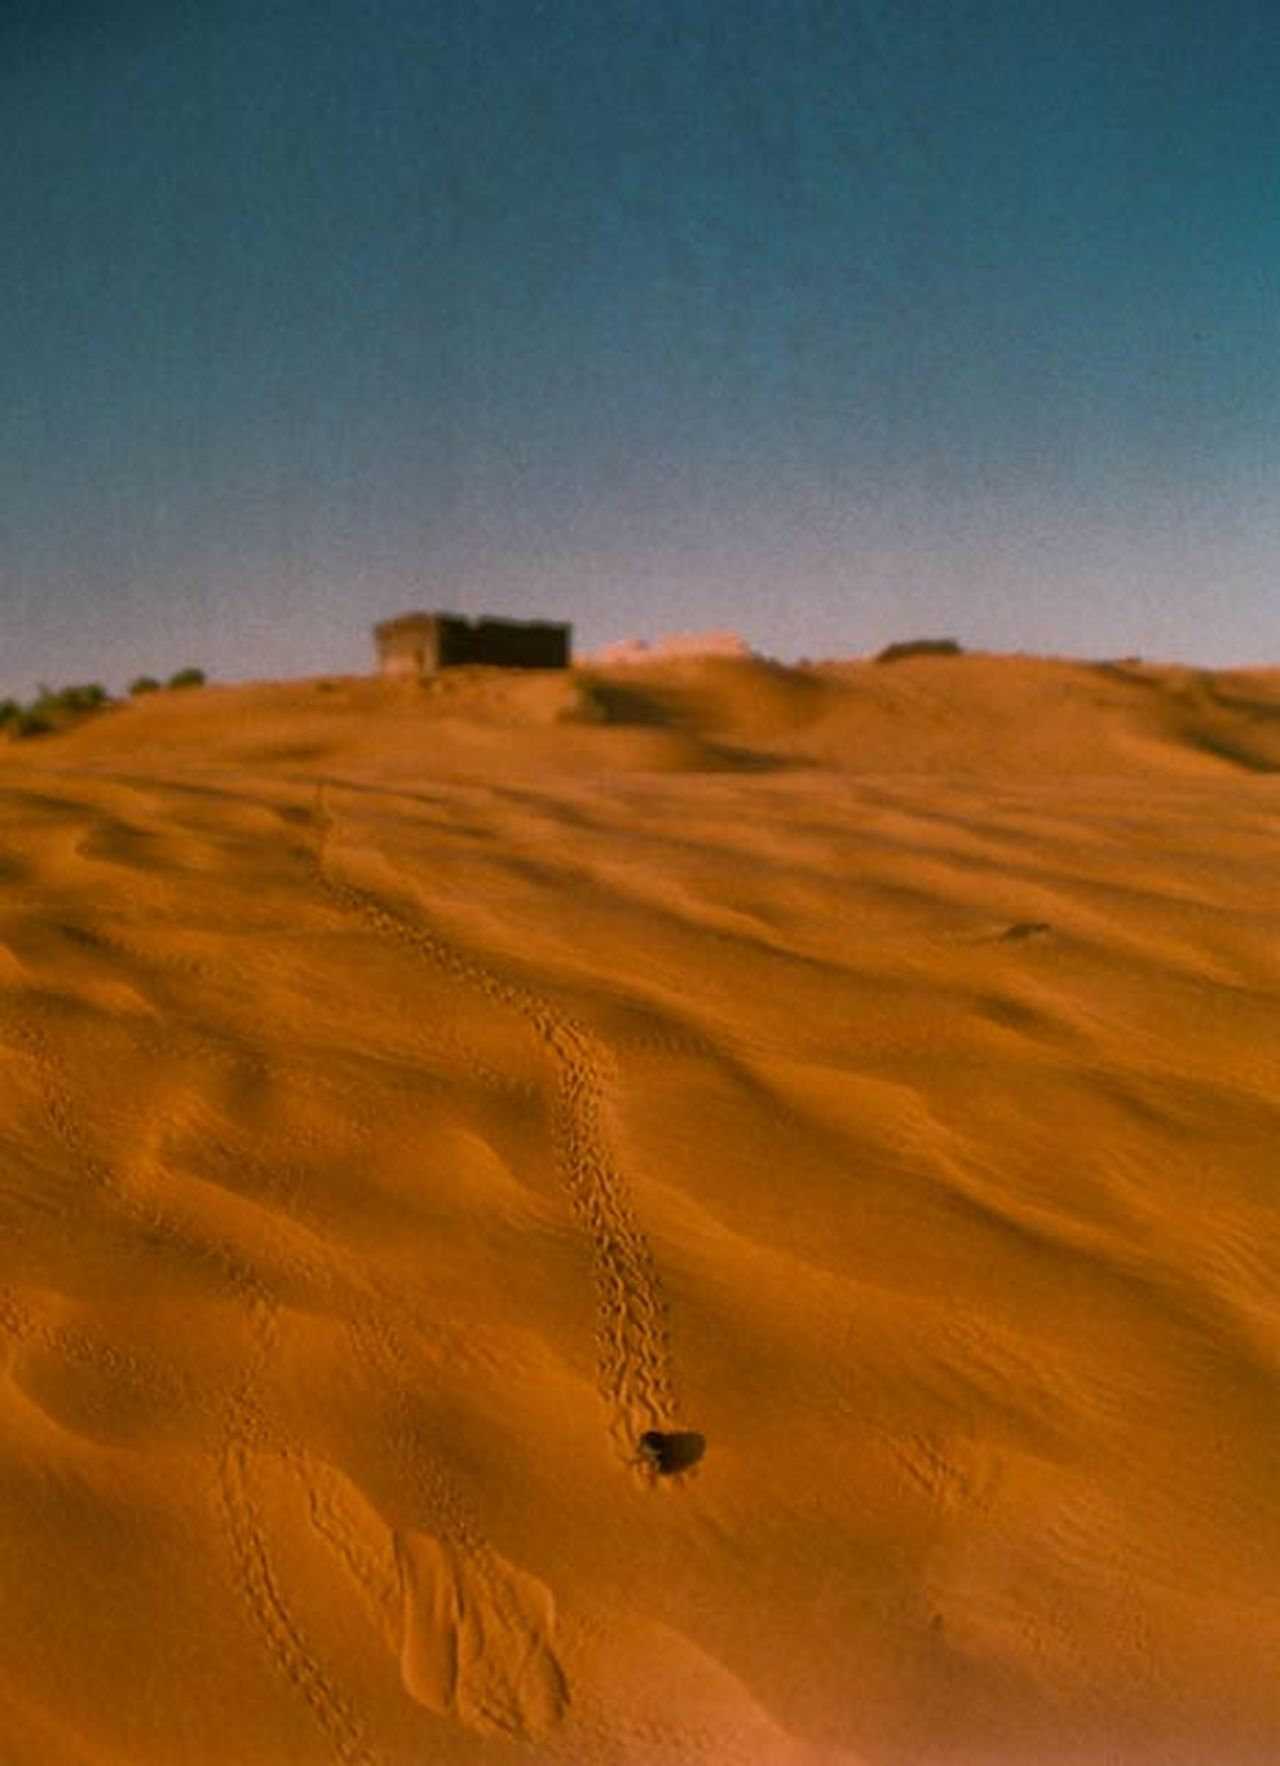 Arid Climate Desert Insect Insect Tracks No People Relief Sand Sand Dune Sky